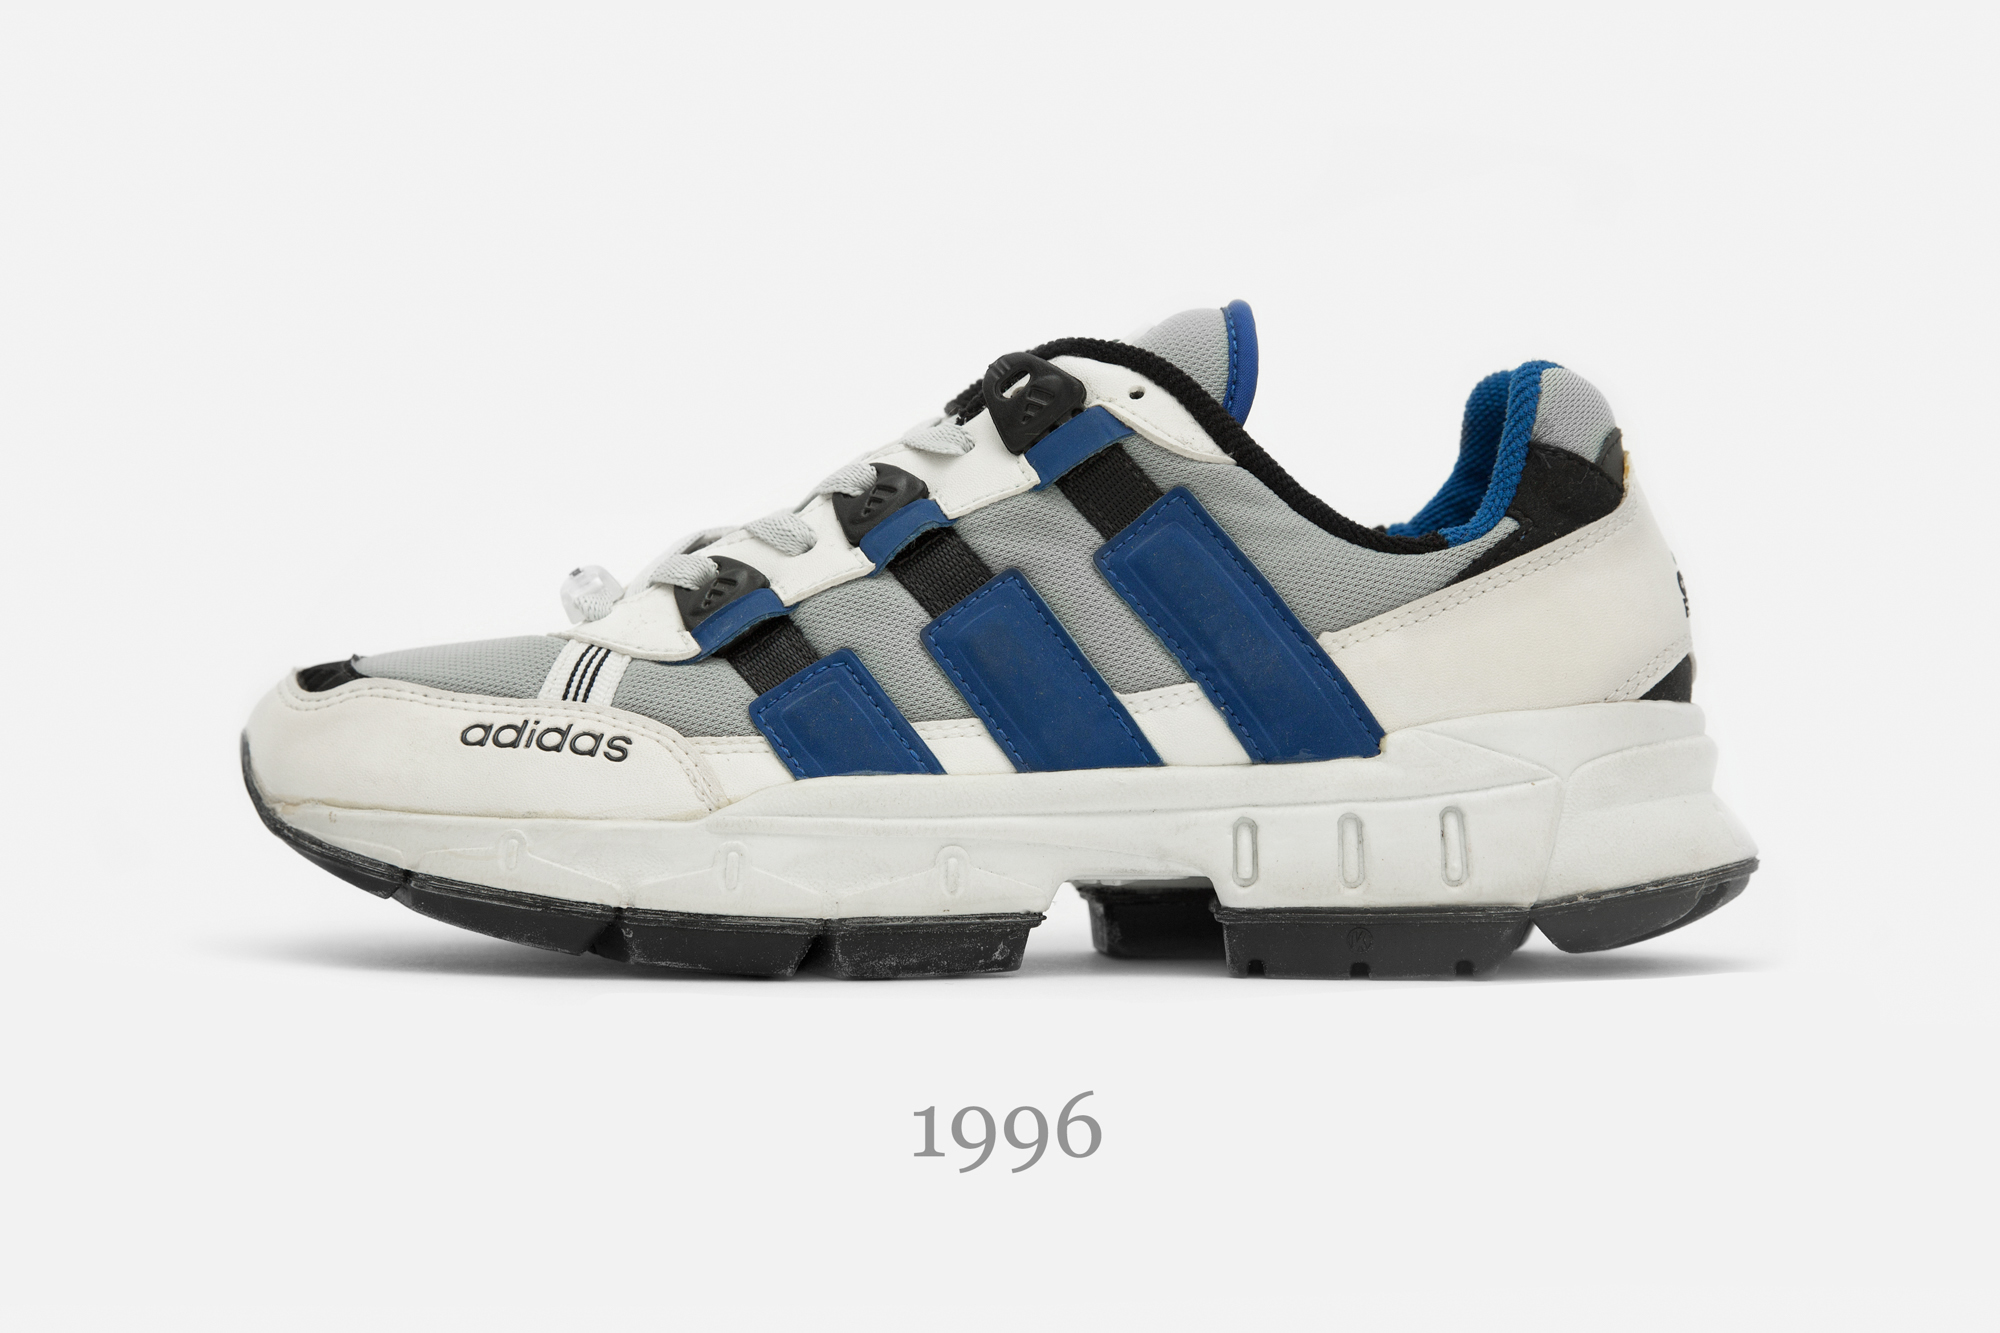 on sale d858a 75869 size? HQ Lock Up - adidas Equipment - size? blog